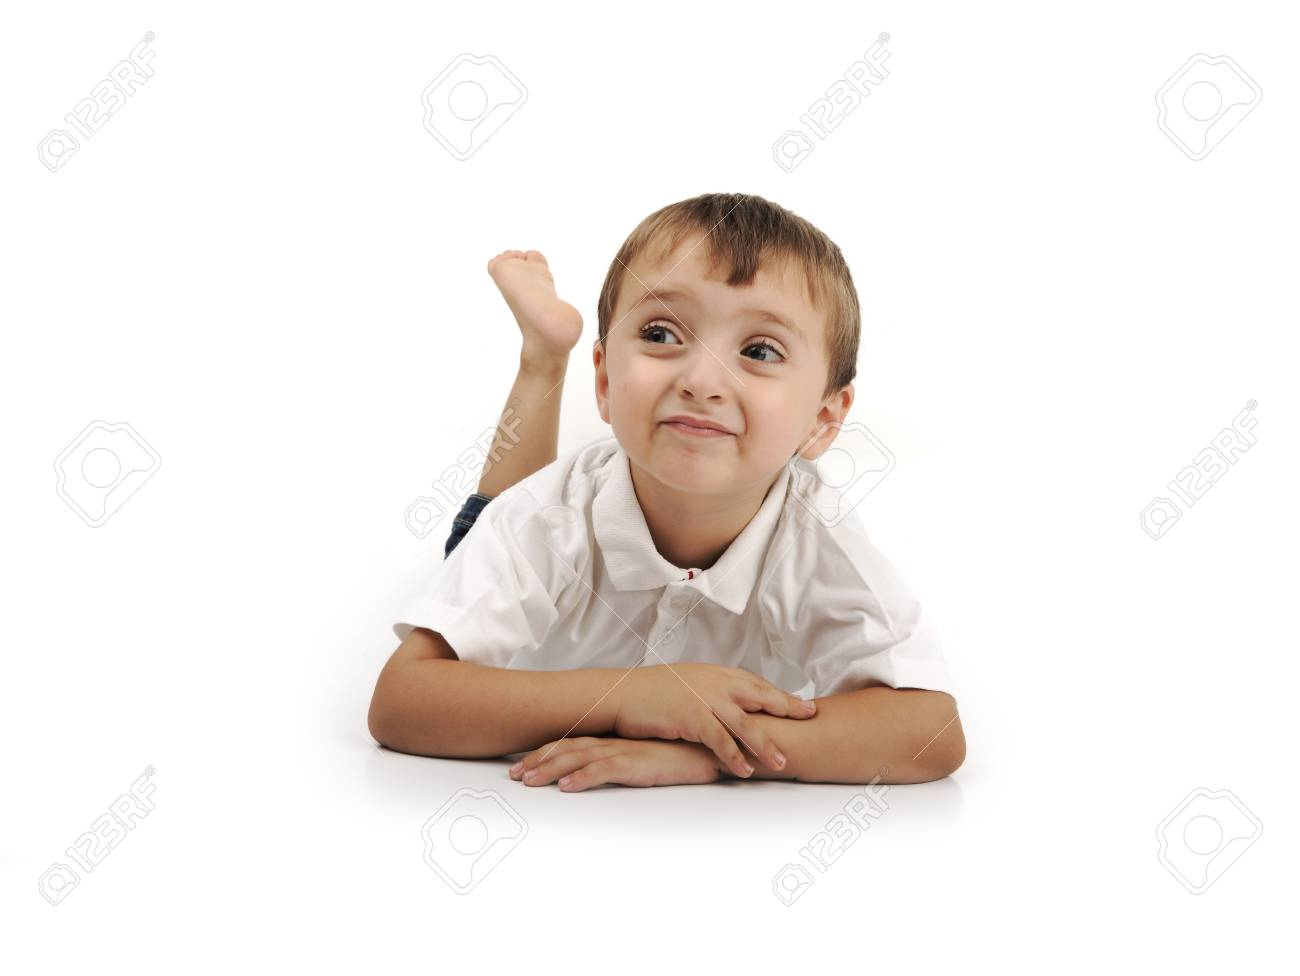 Very cute positive smiling little boy, isolated. Stock Photo - 8805757